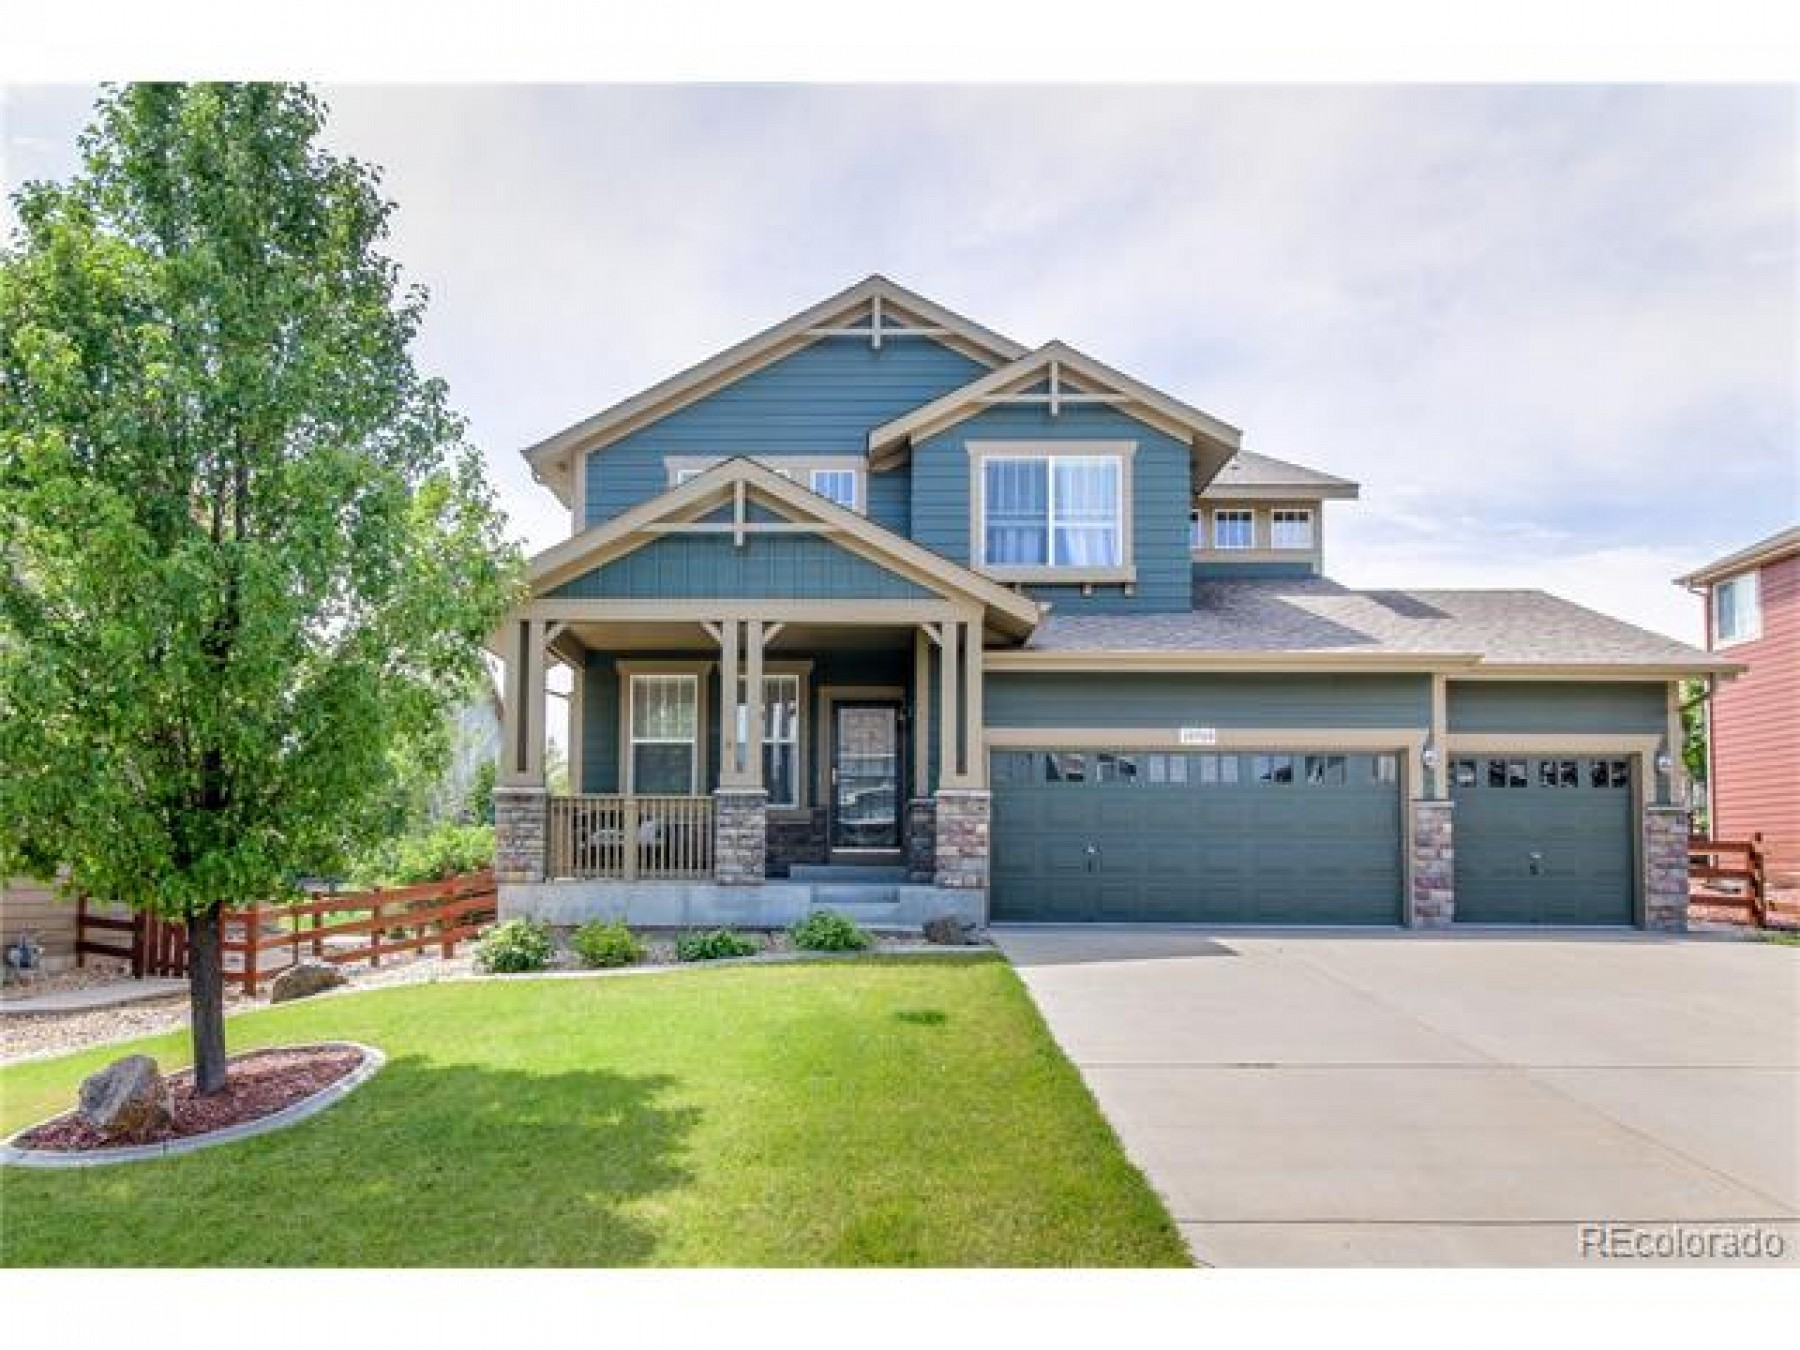 10560 Cross Country Lane, Littleton, CO 80125